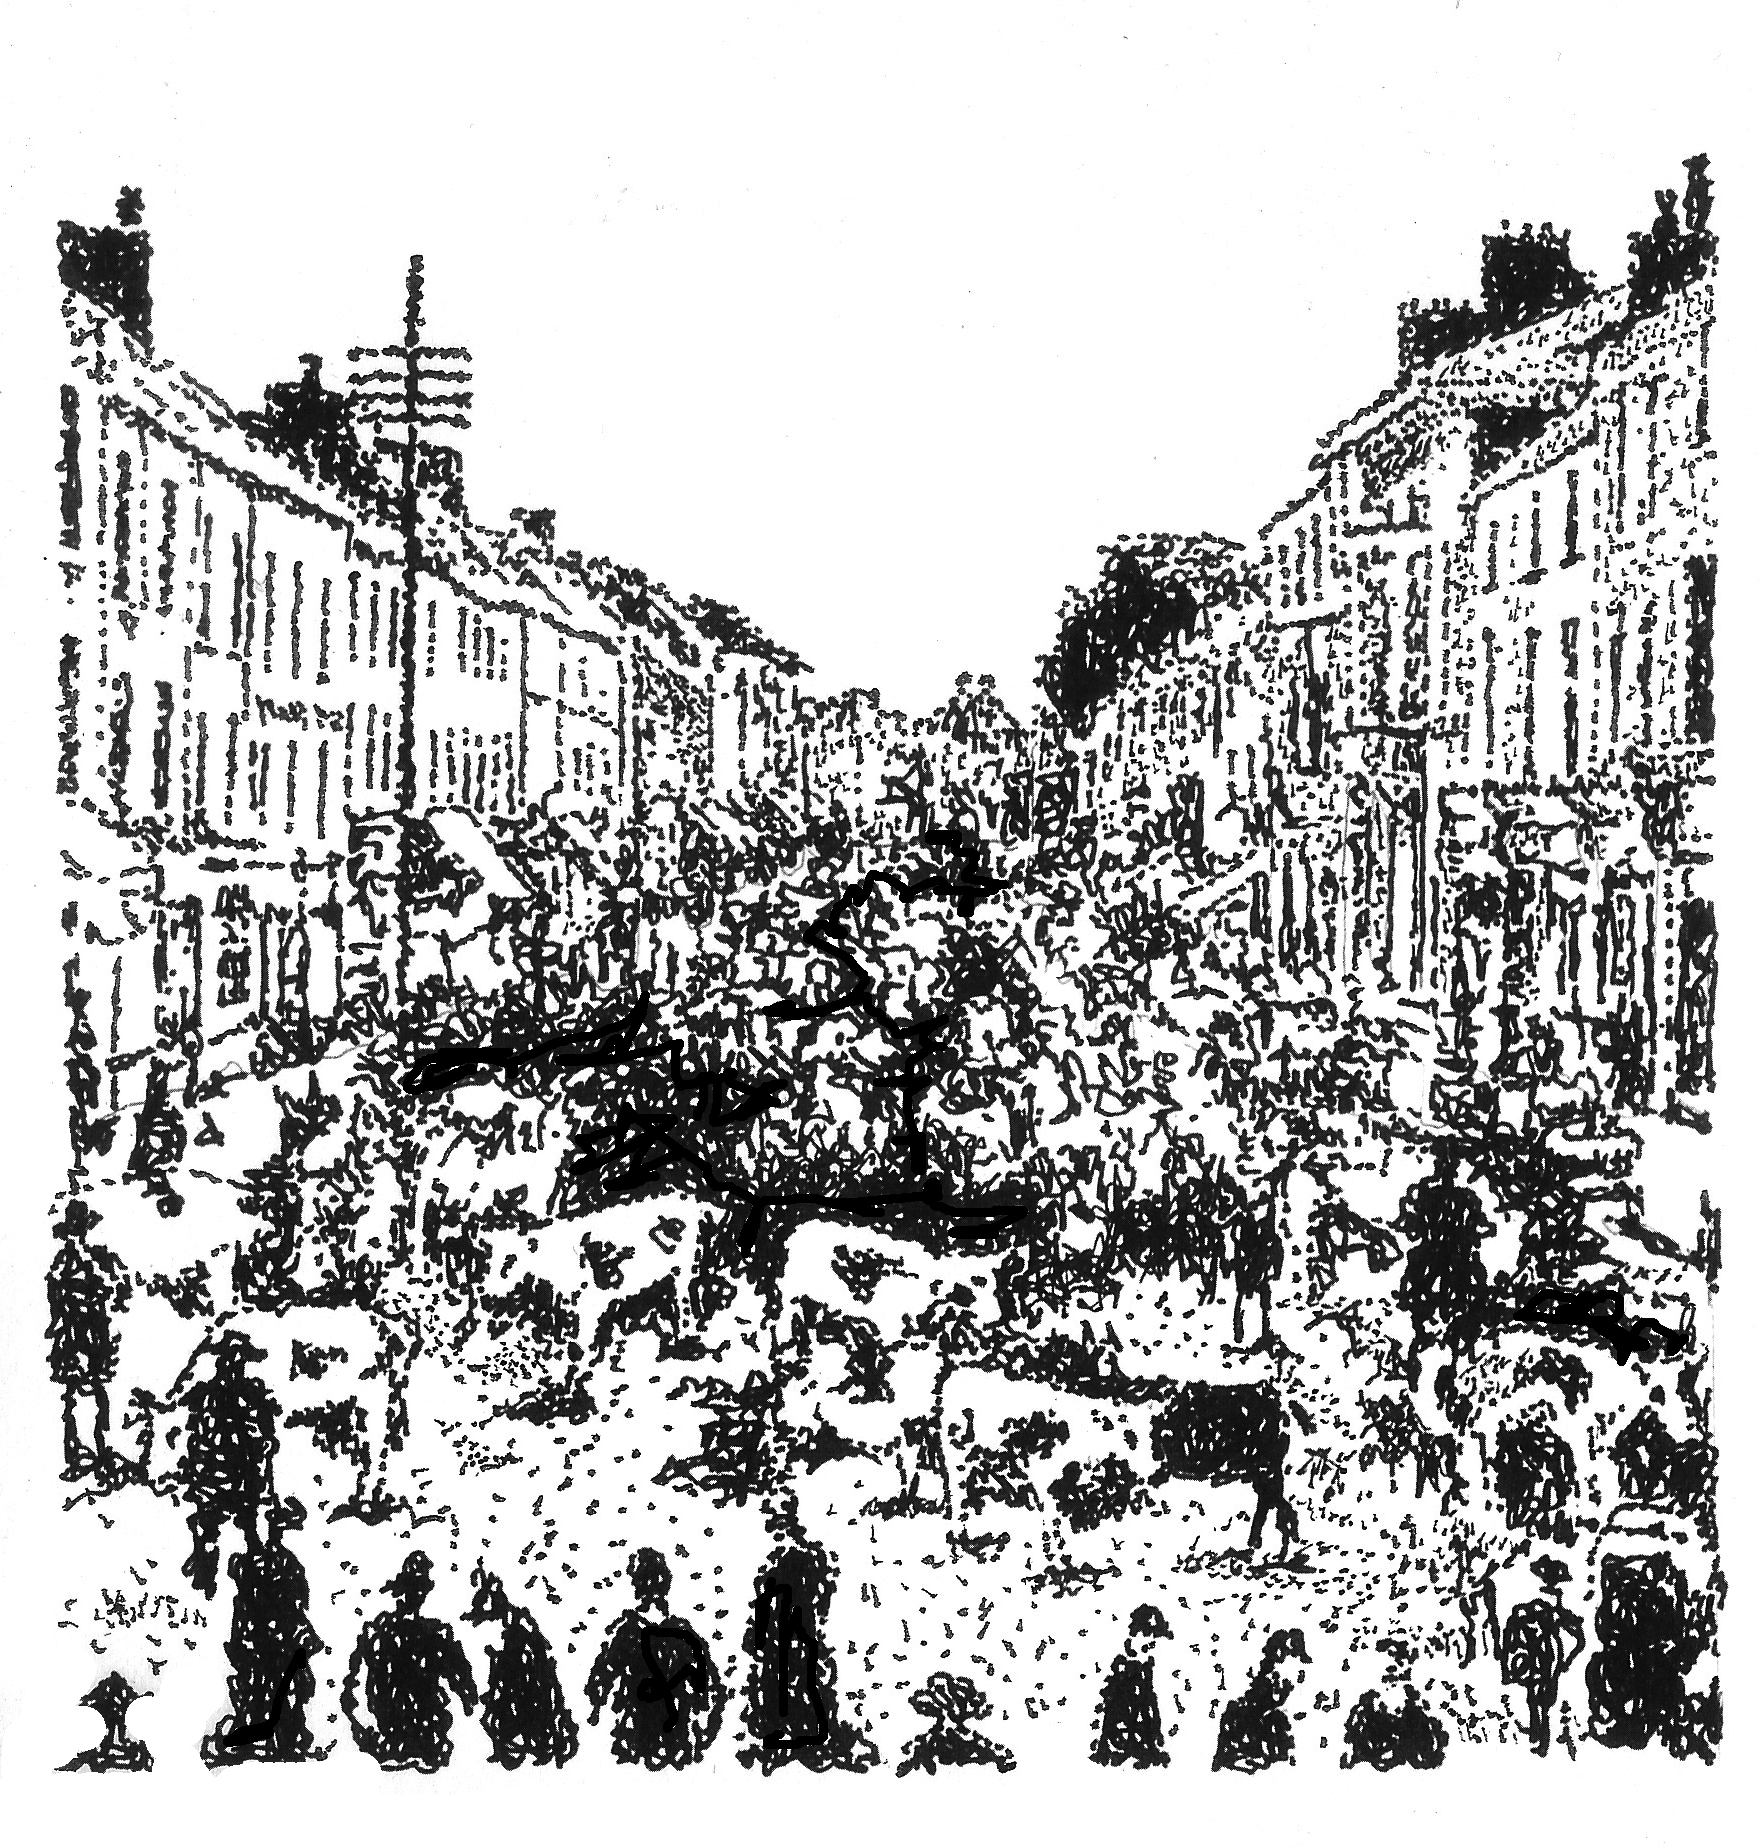 Markets such as the one depicted here were banned due to the ongoing tumult during 1920 and 1921.